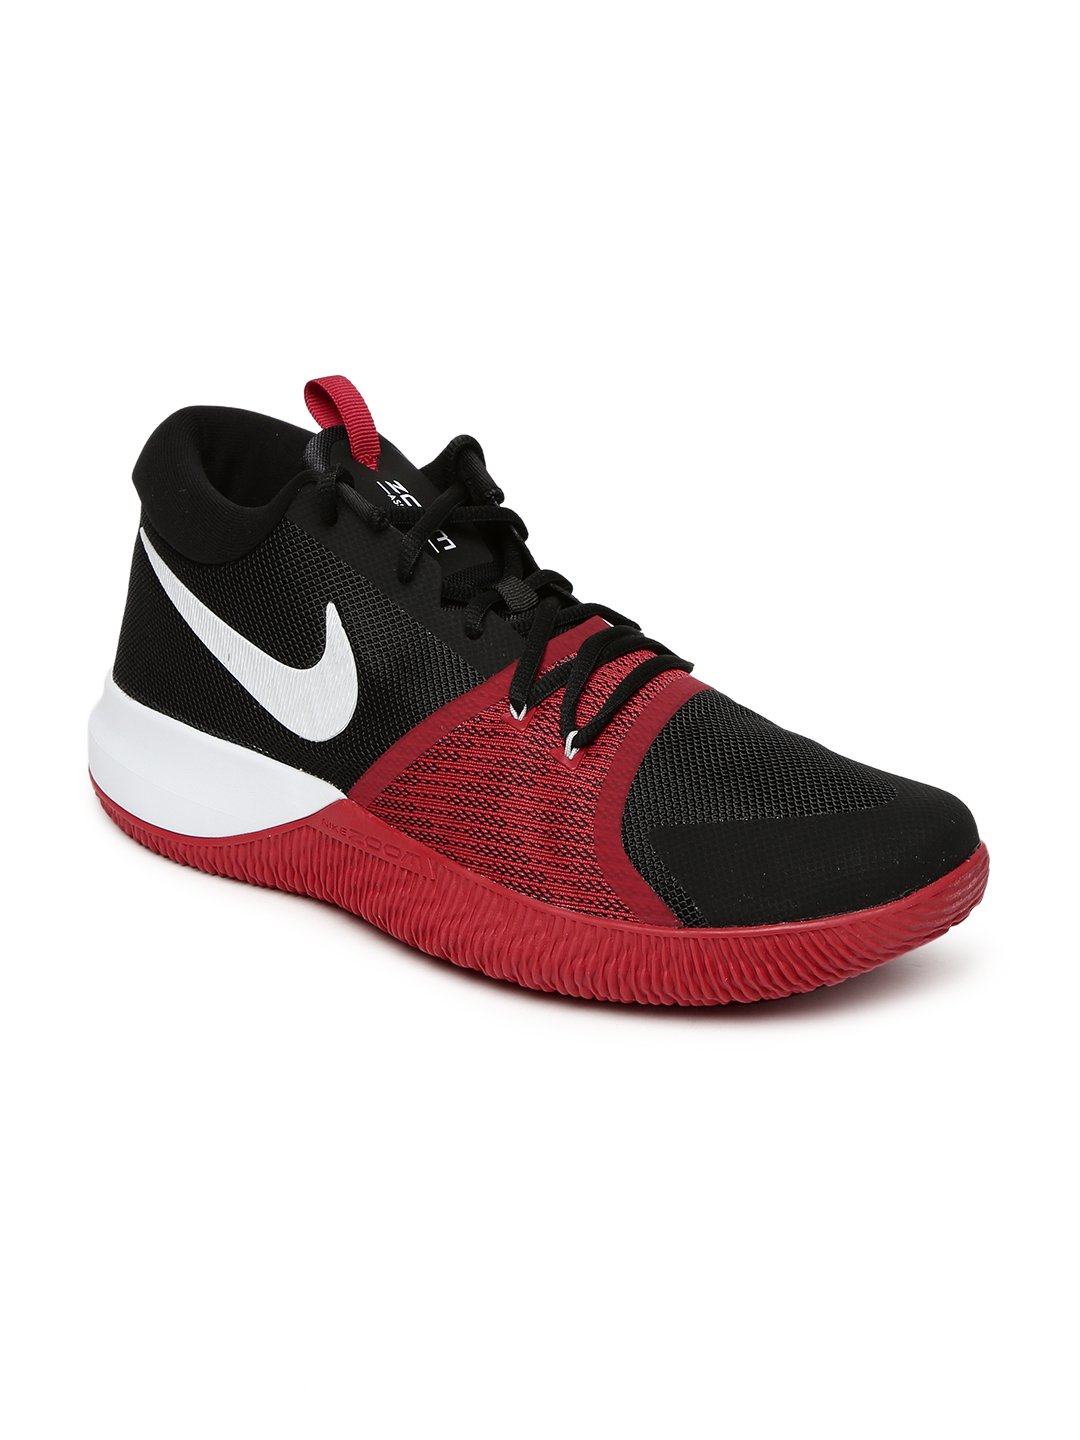 NIKE Men's Zoom Assersion Basketball Shoe B06X3W2825 12 D(M) US|Black/White-gym Red